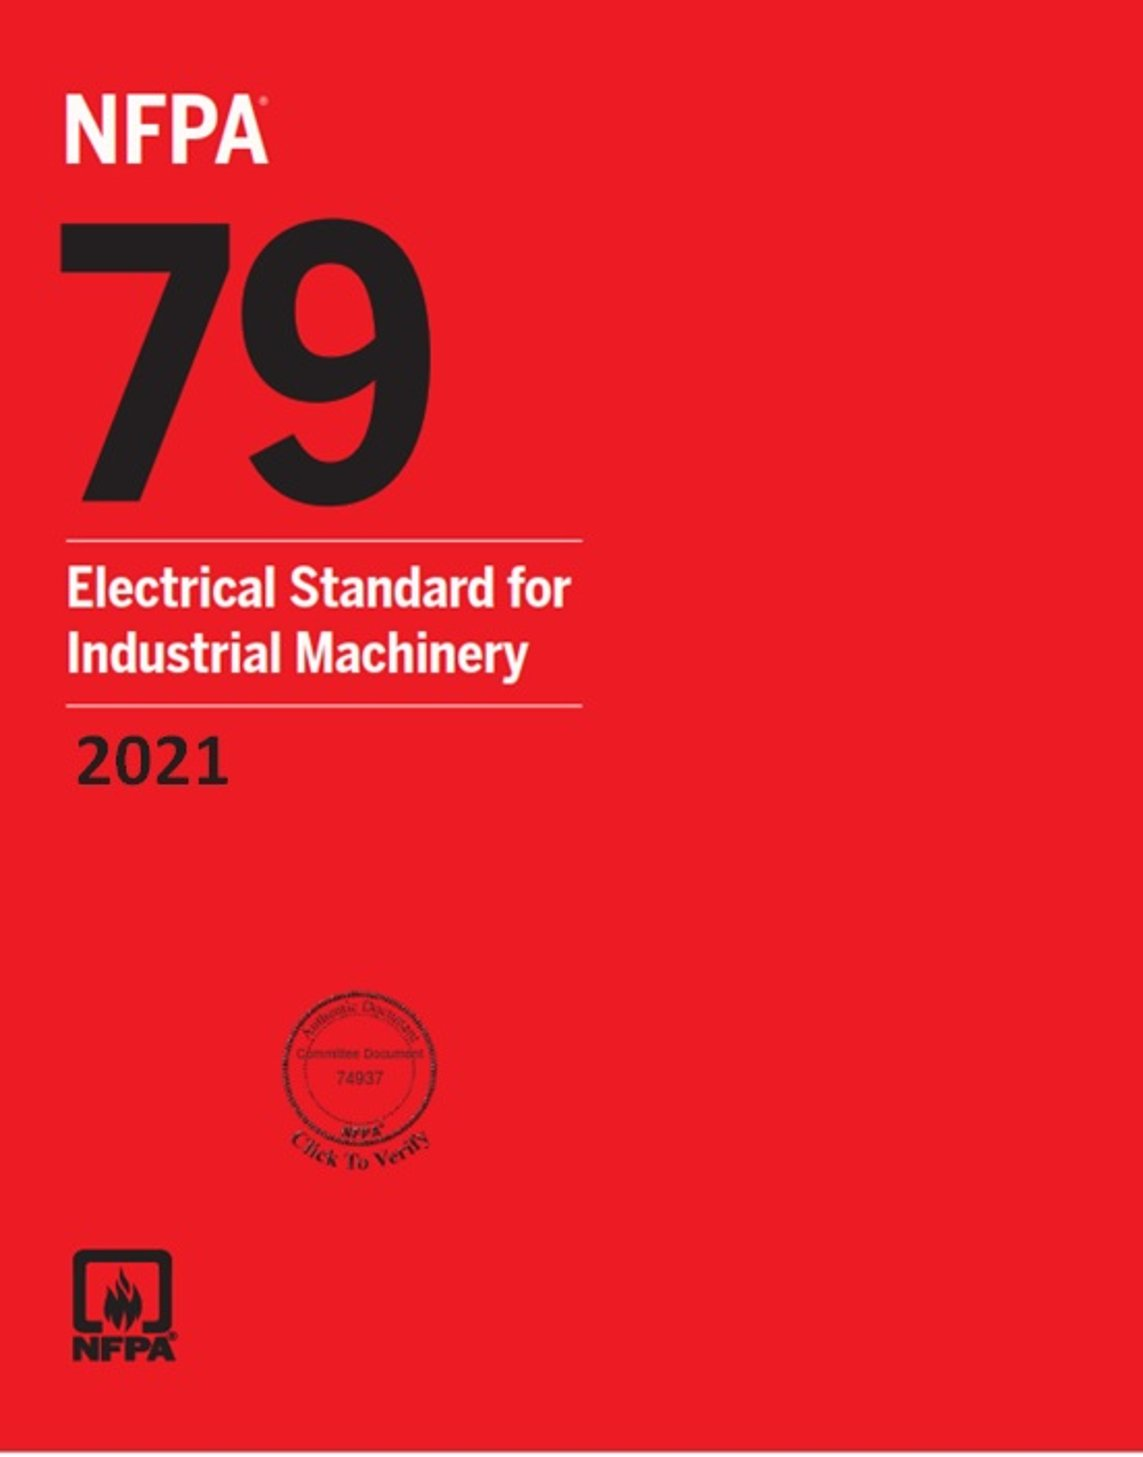 Industrial Machinery NFPA 79